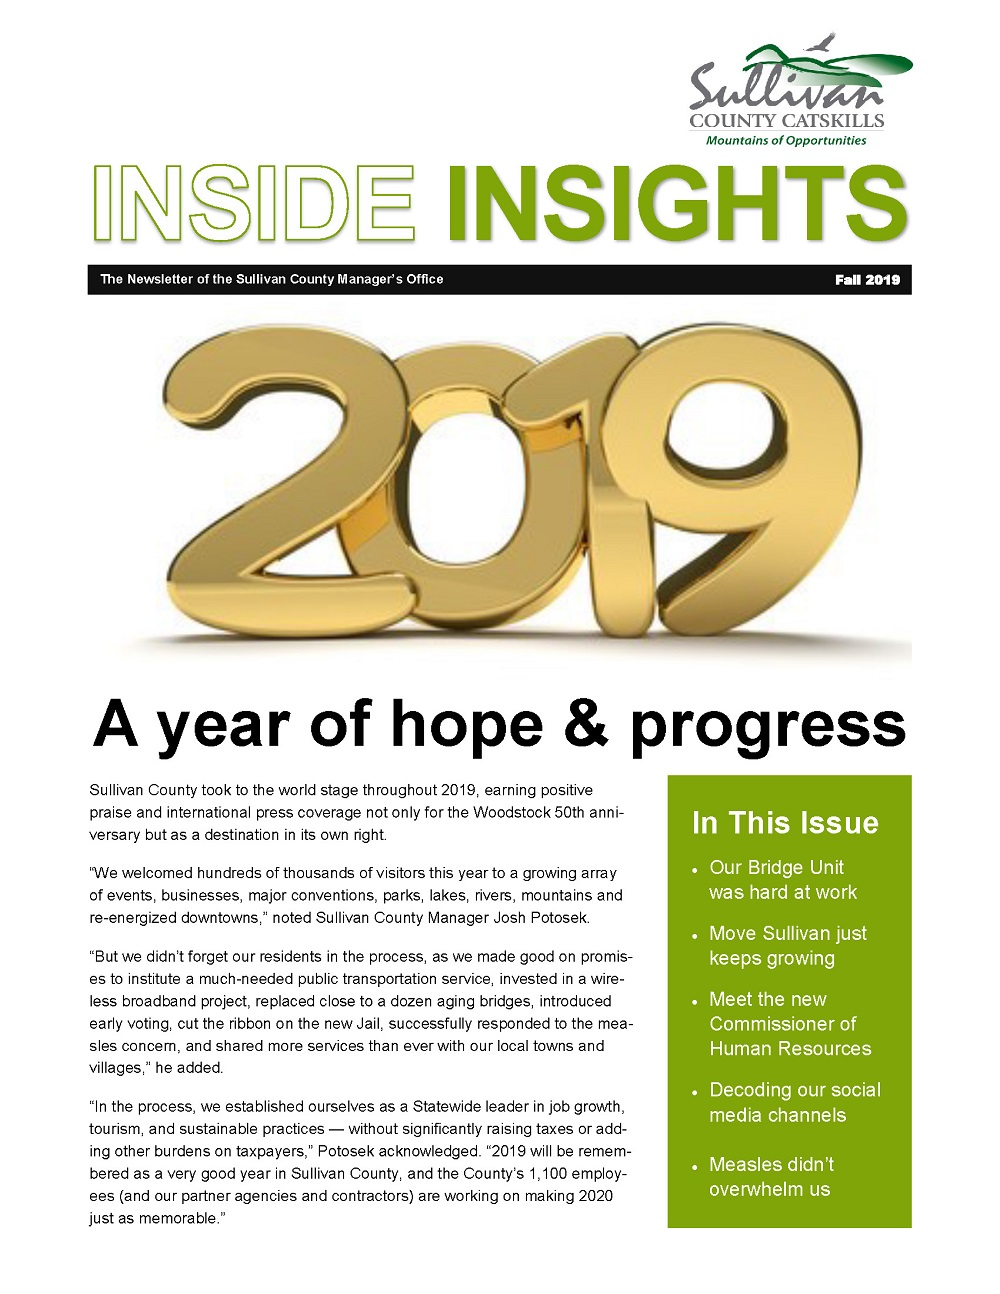 Fall 2019 Edition of County Manager's Newsletter